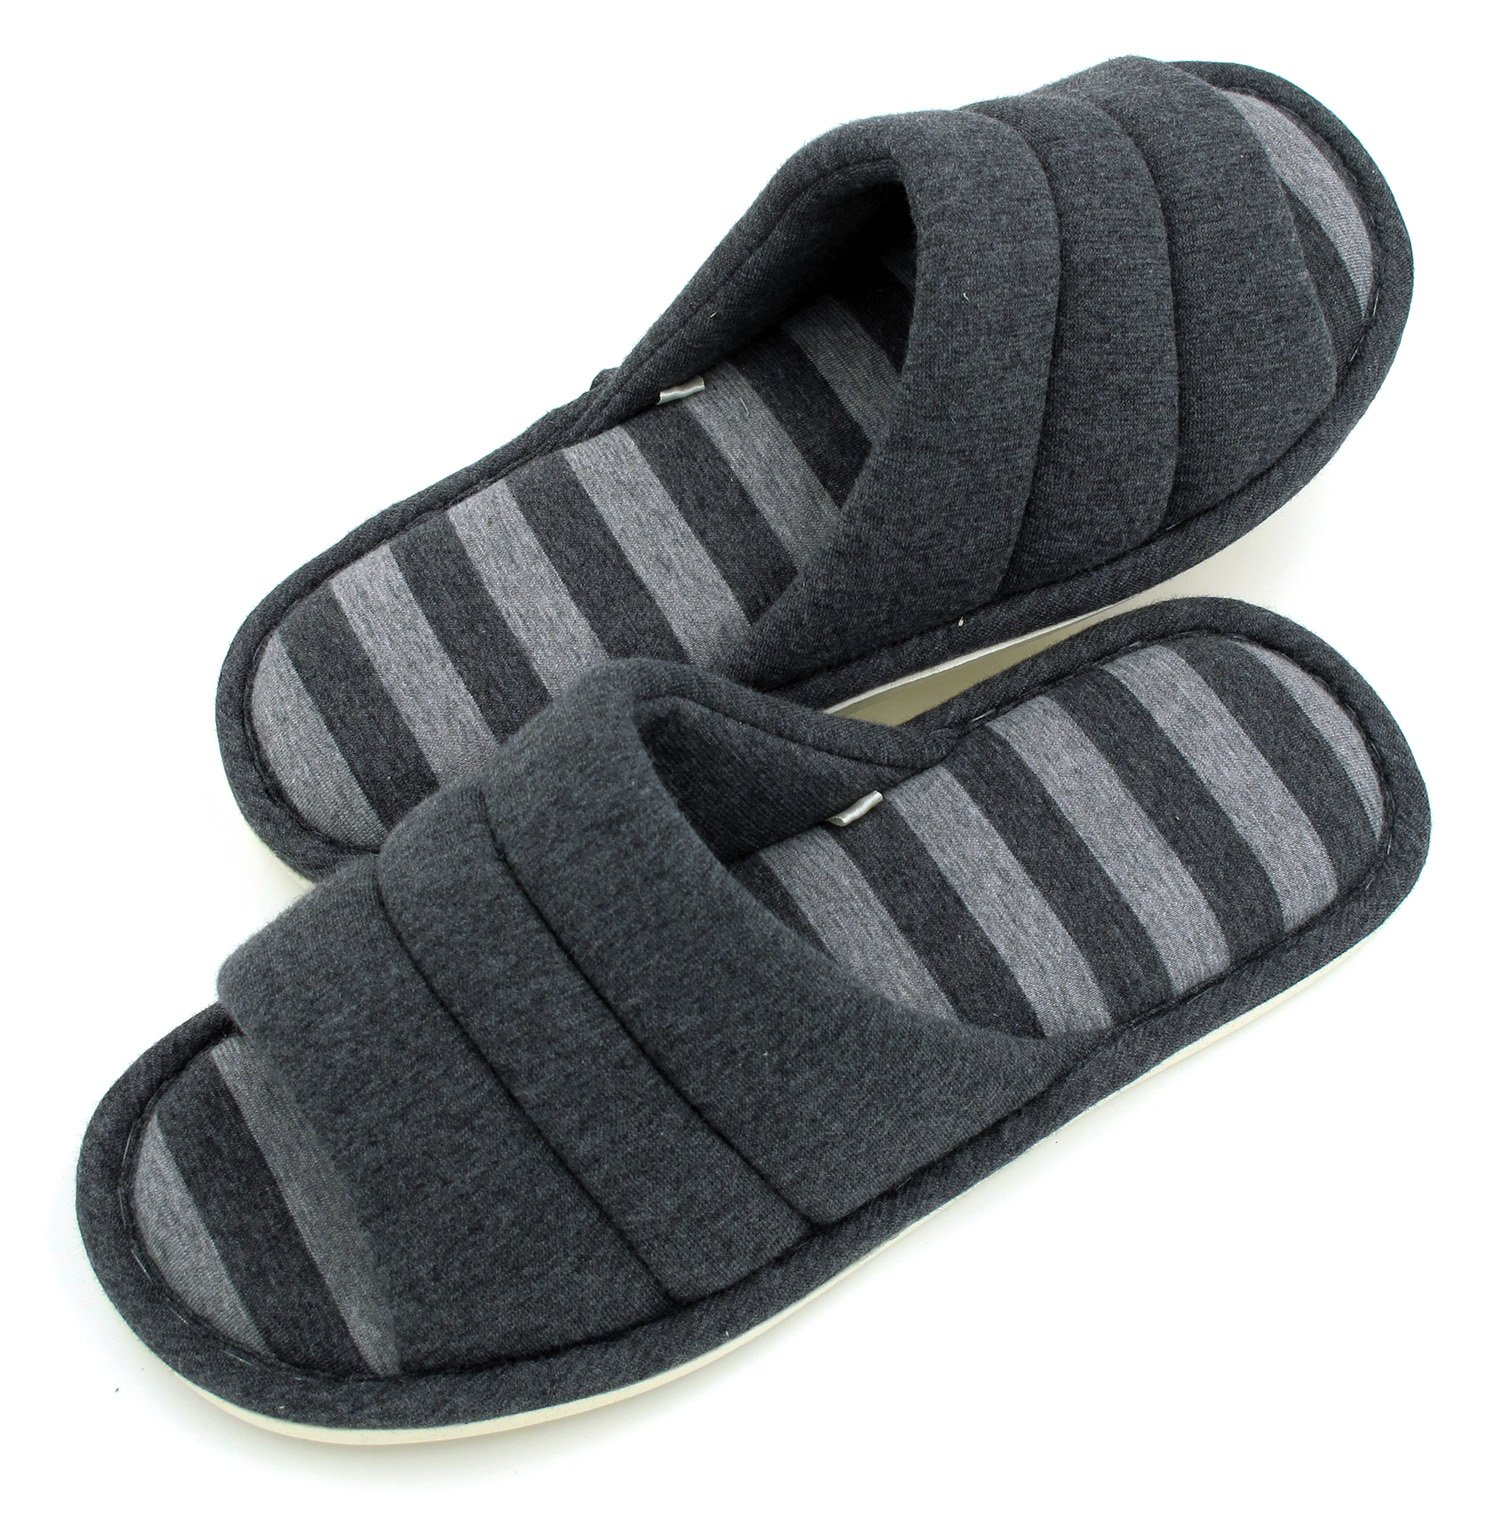 Sunshine Code Unisex Memory Foam Cotton Washable Stripe Slippers for Travel House Hotel Spa Bedroom, 28CM, Charcoal Grey